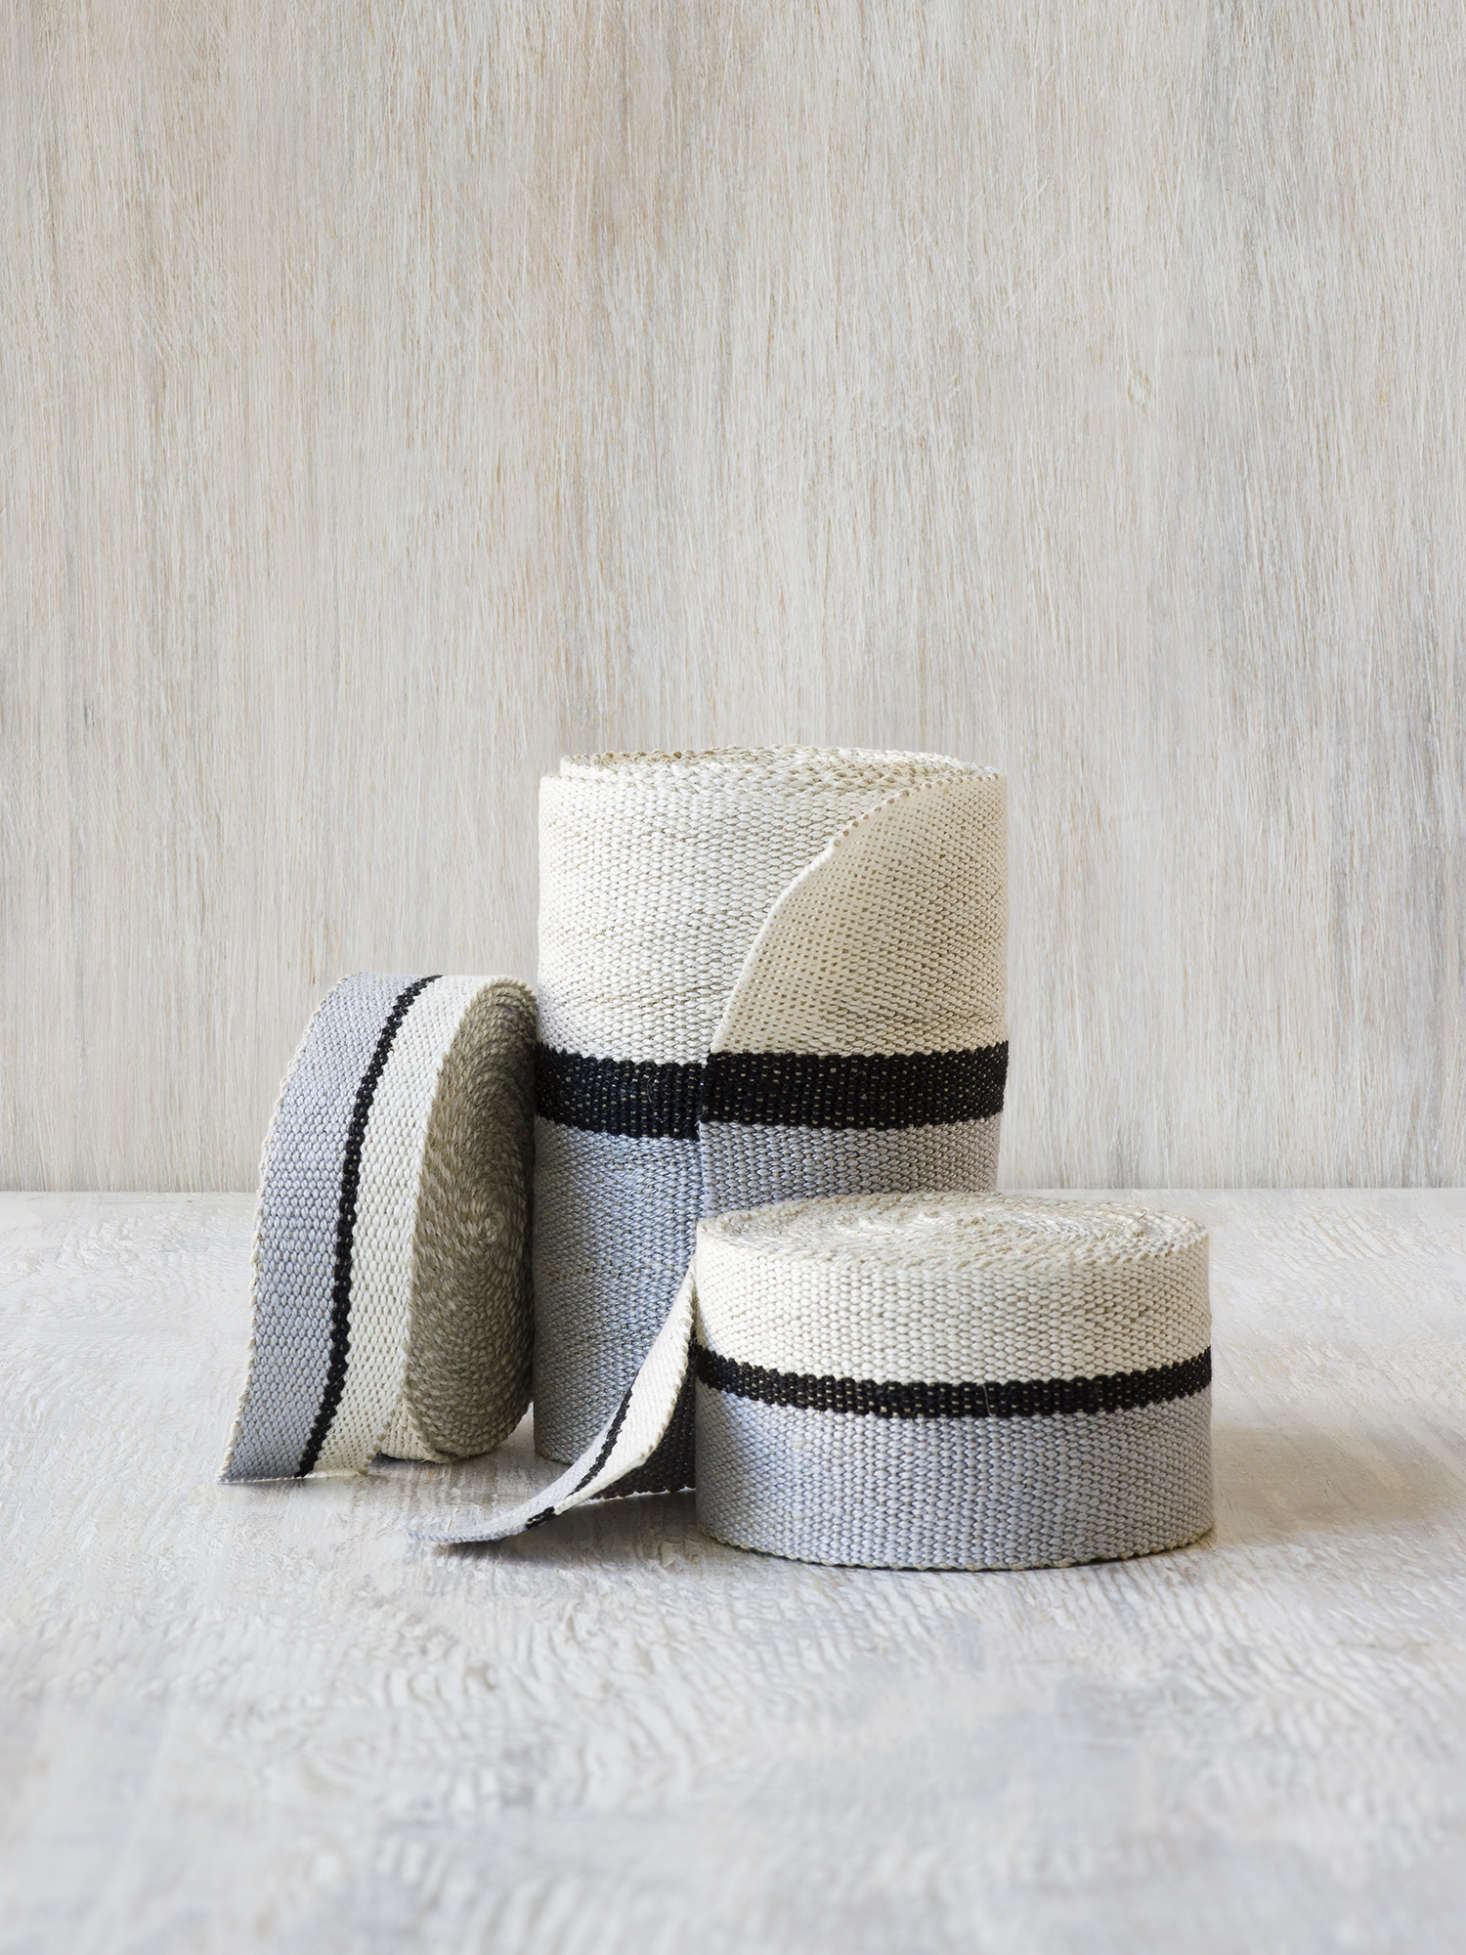 Artisanal Dish Towels Pillows And Linen Tape Woven By